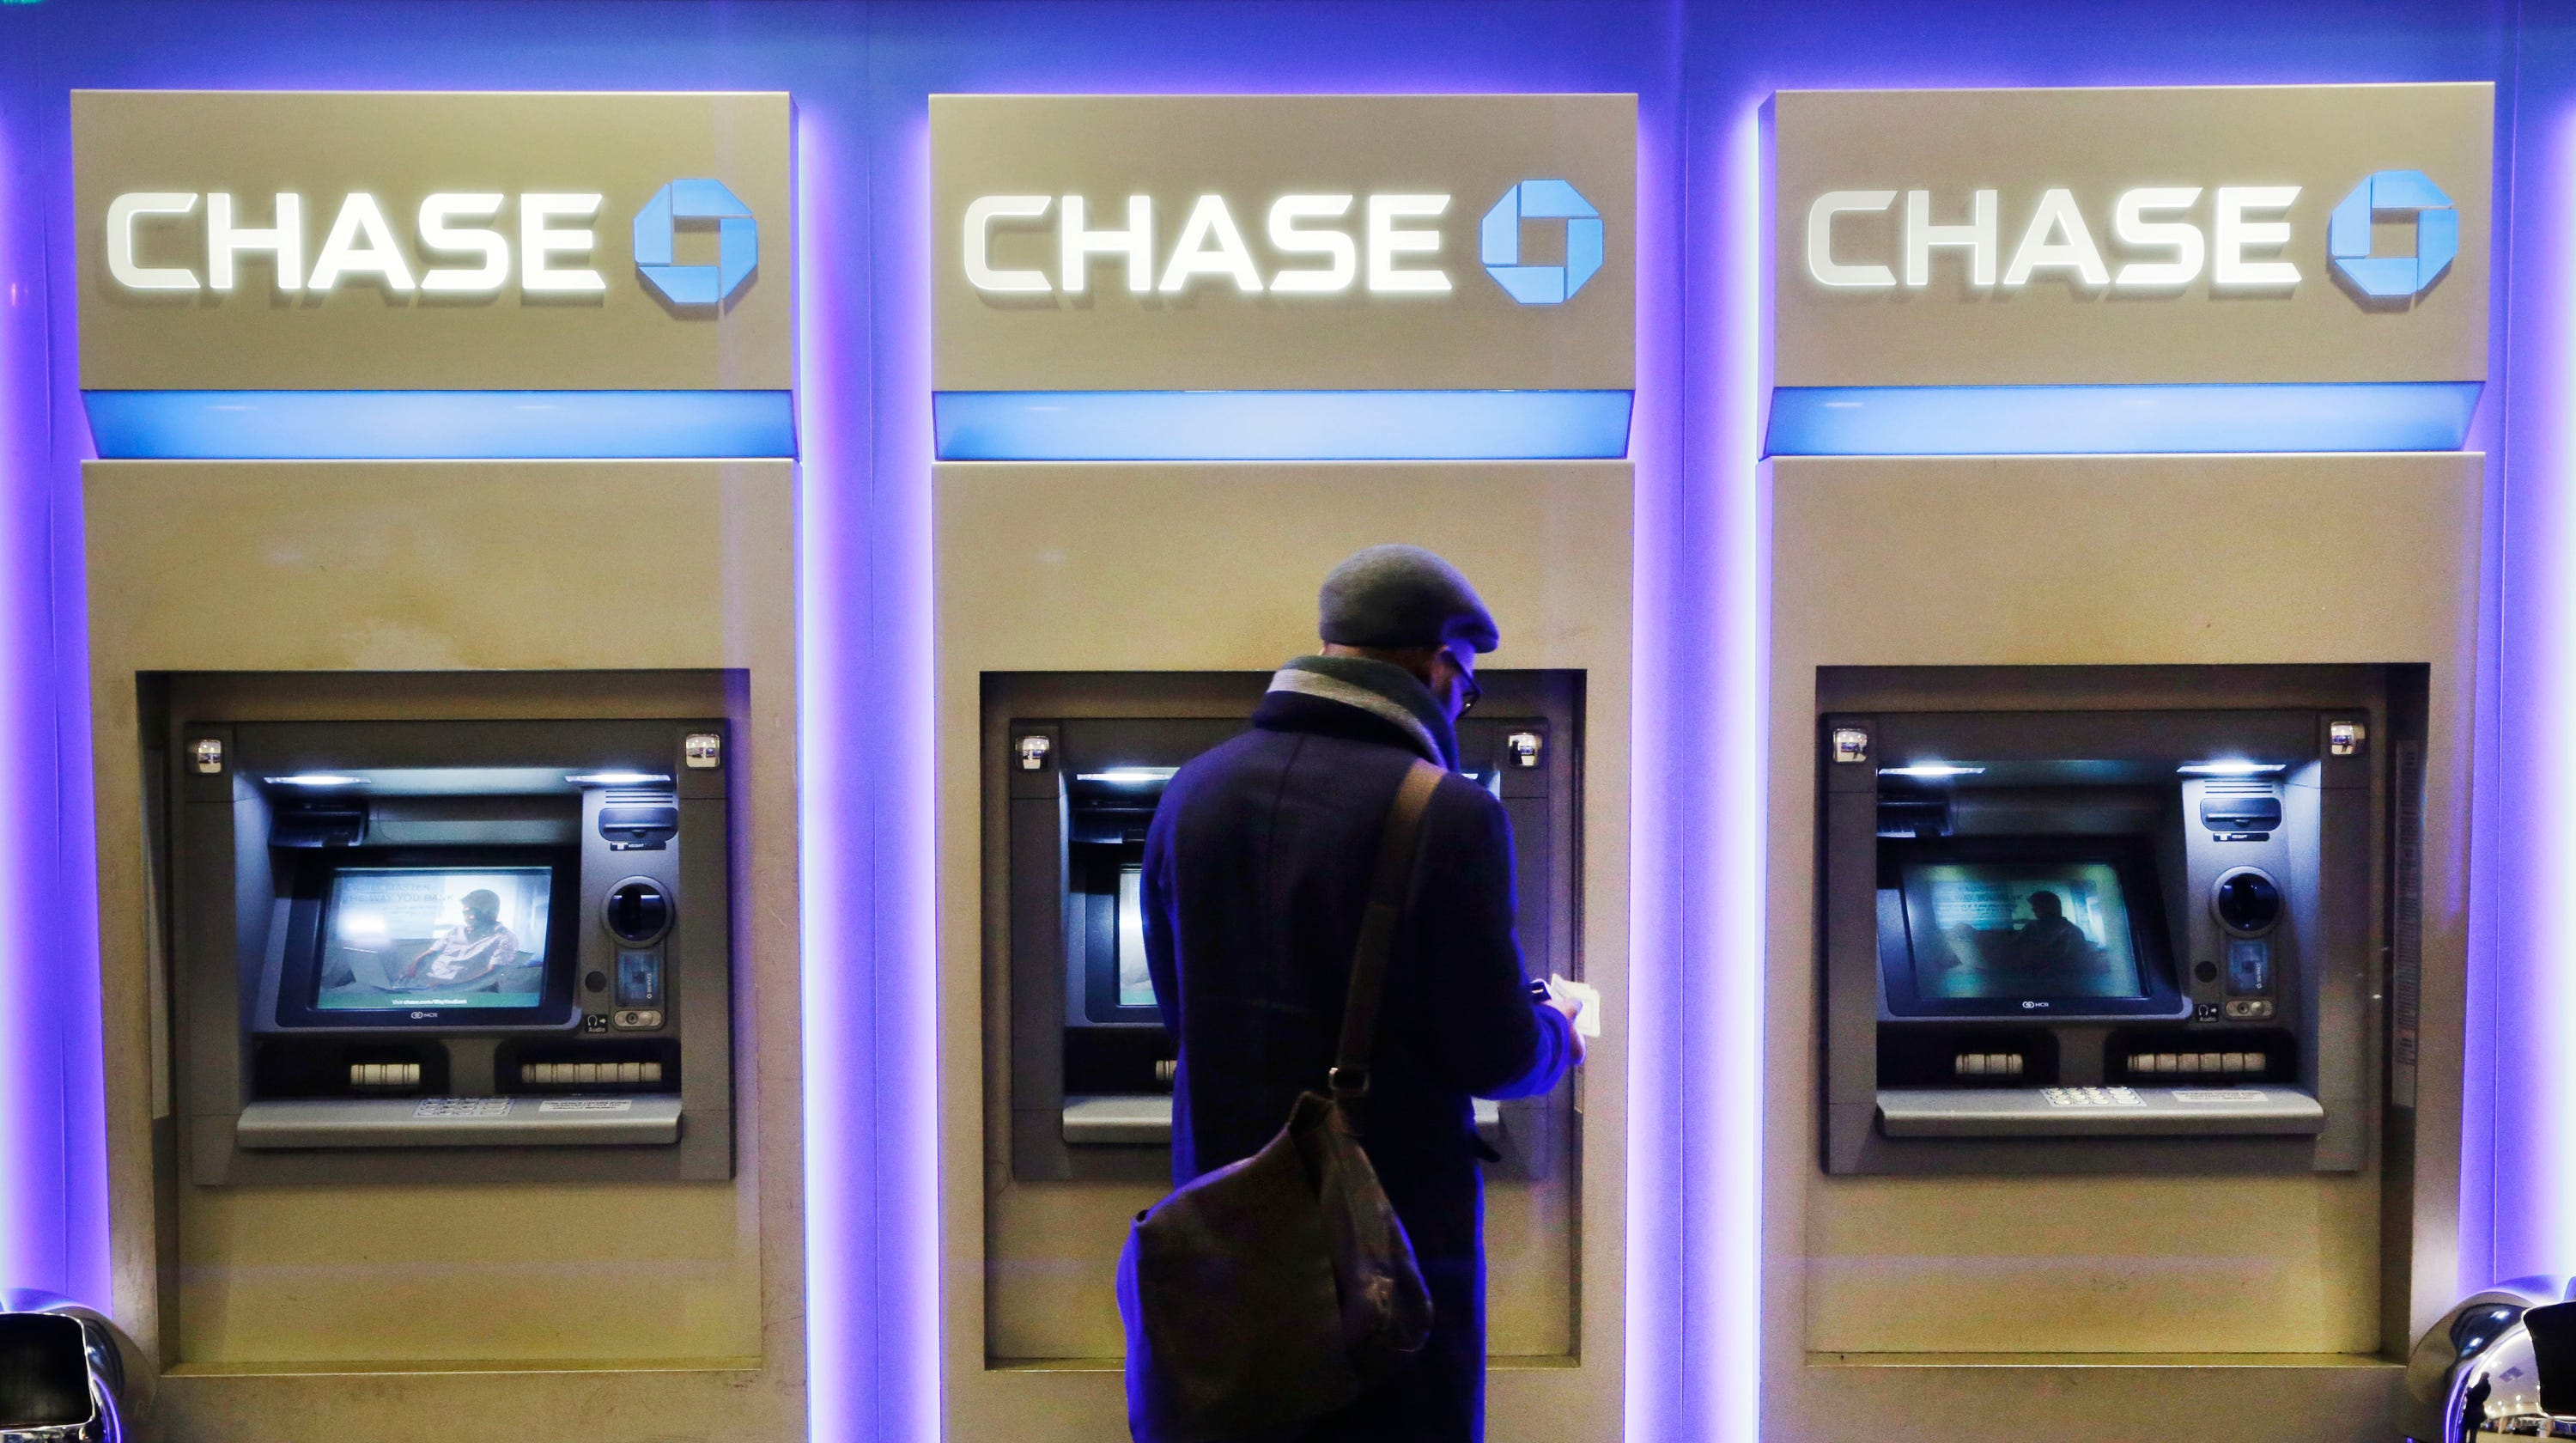 Chase checking account balance off? Bank says 'technical issue' was to blame